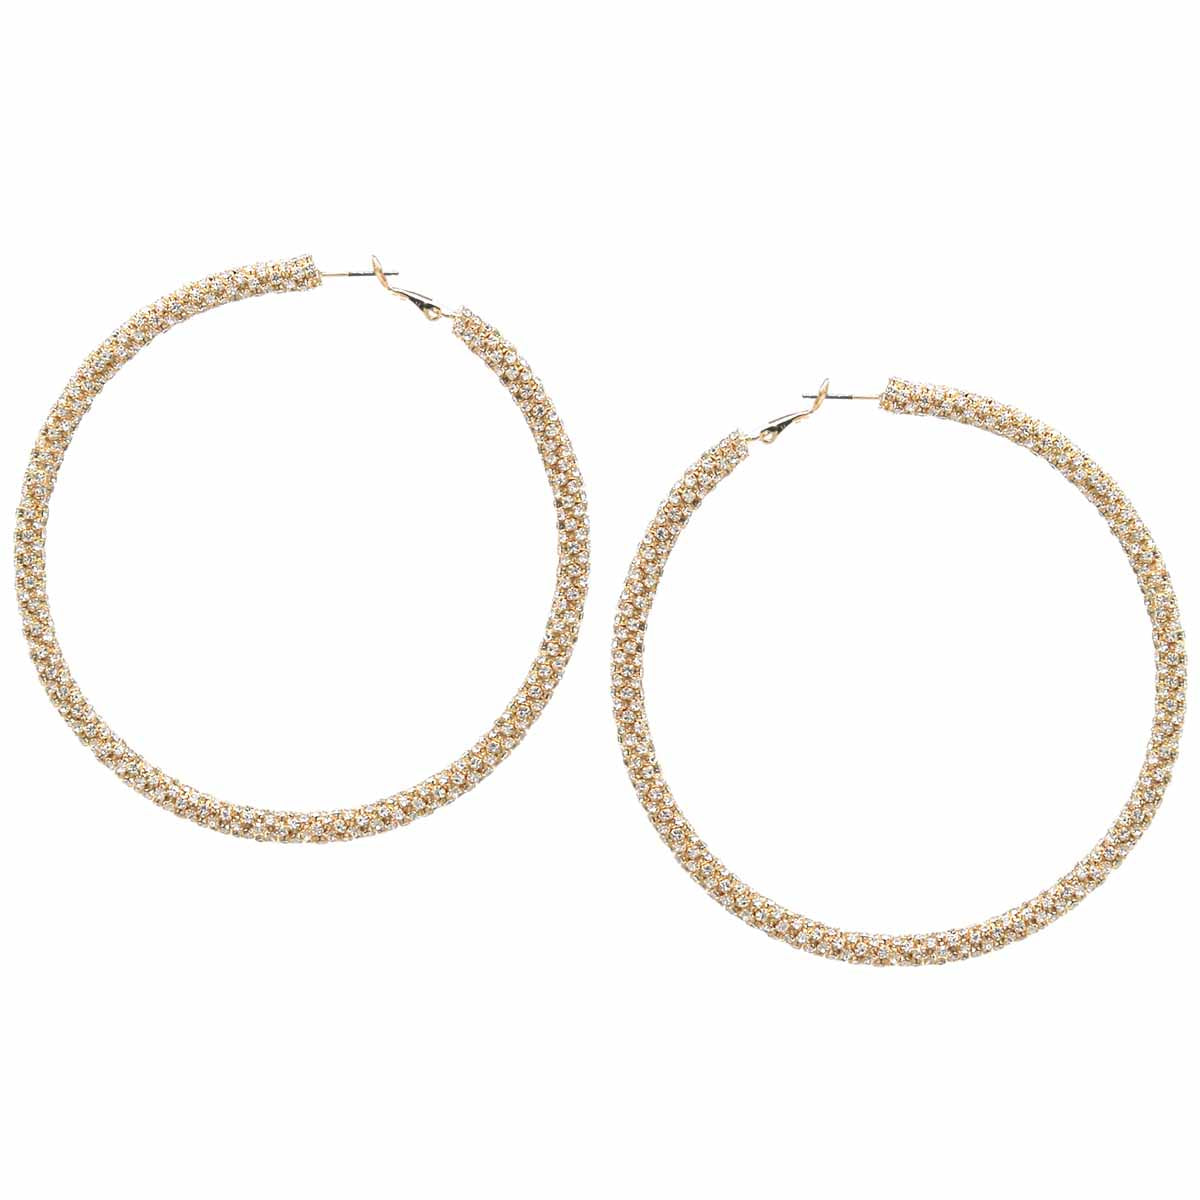 Rhinestone Wrapped Hoop Earrings (80 mm)